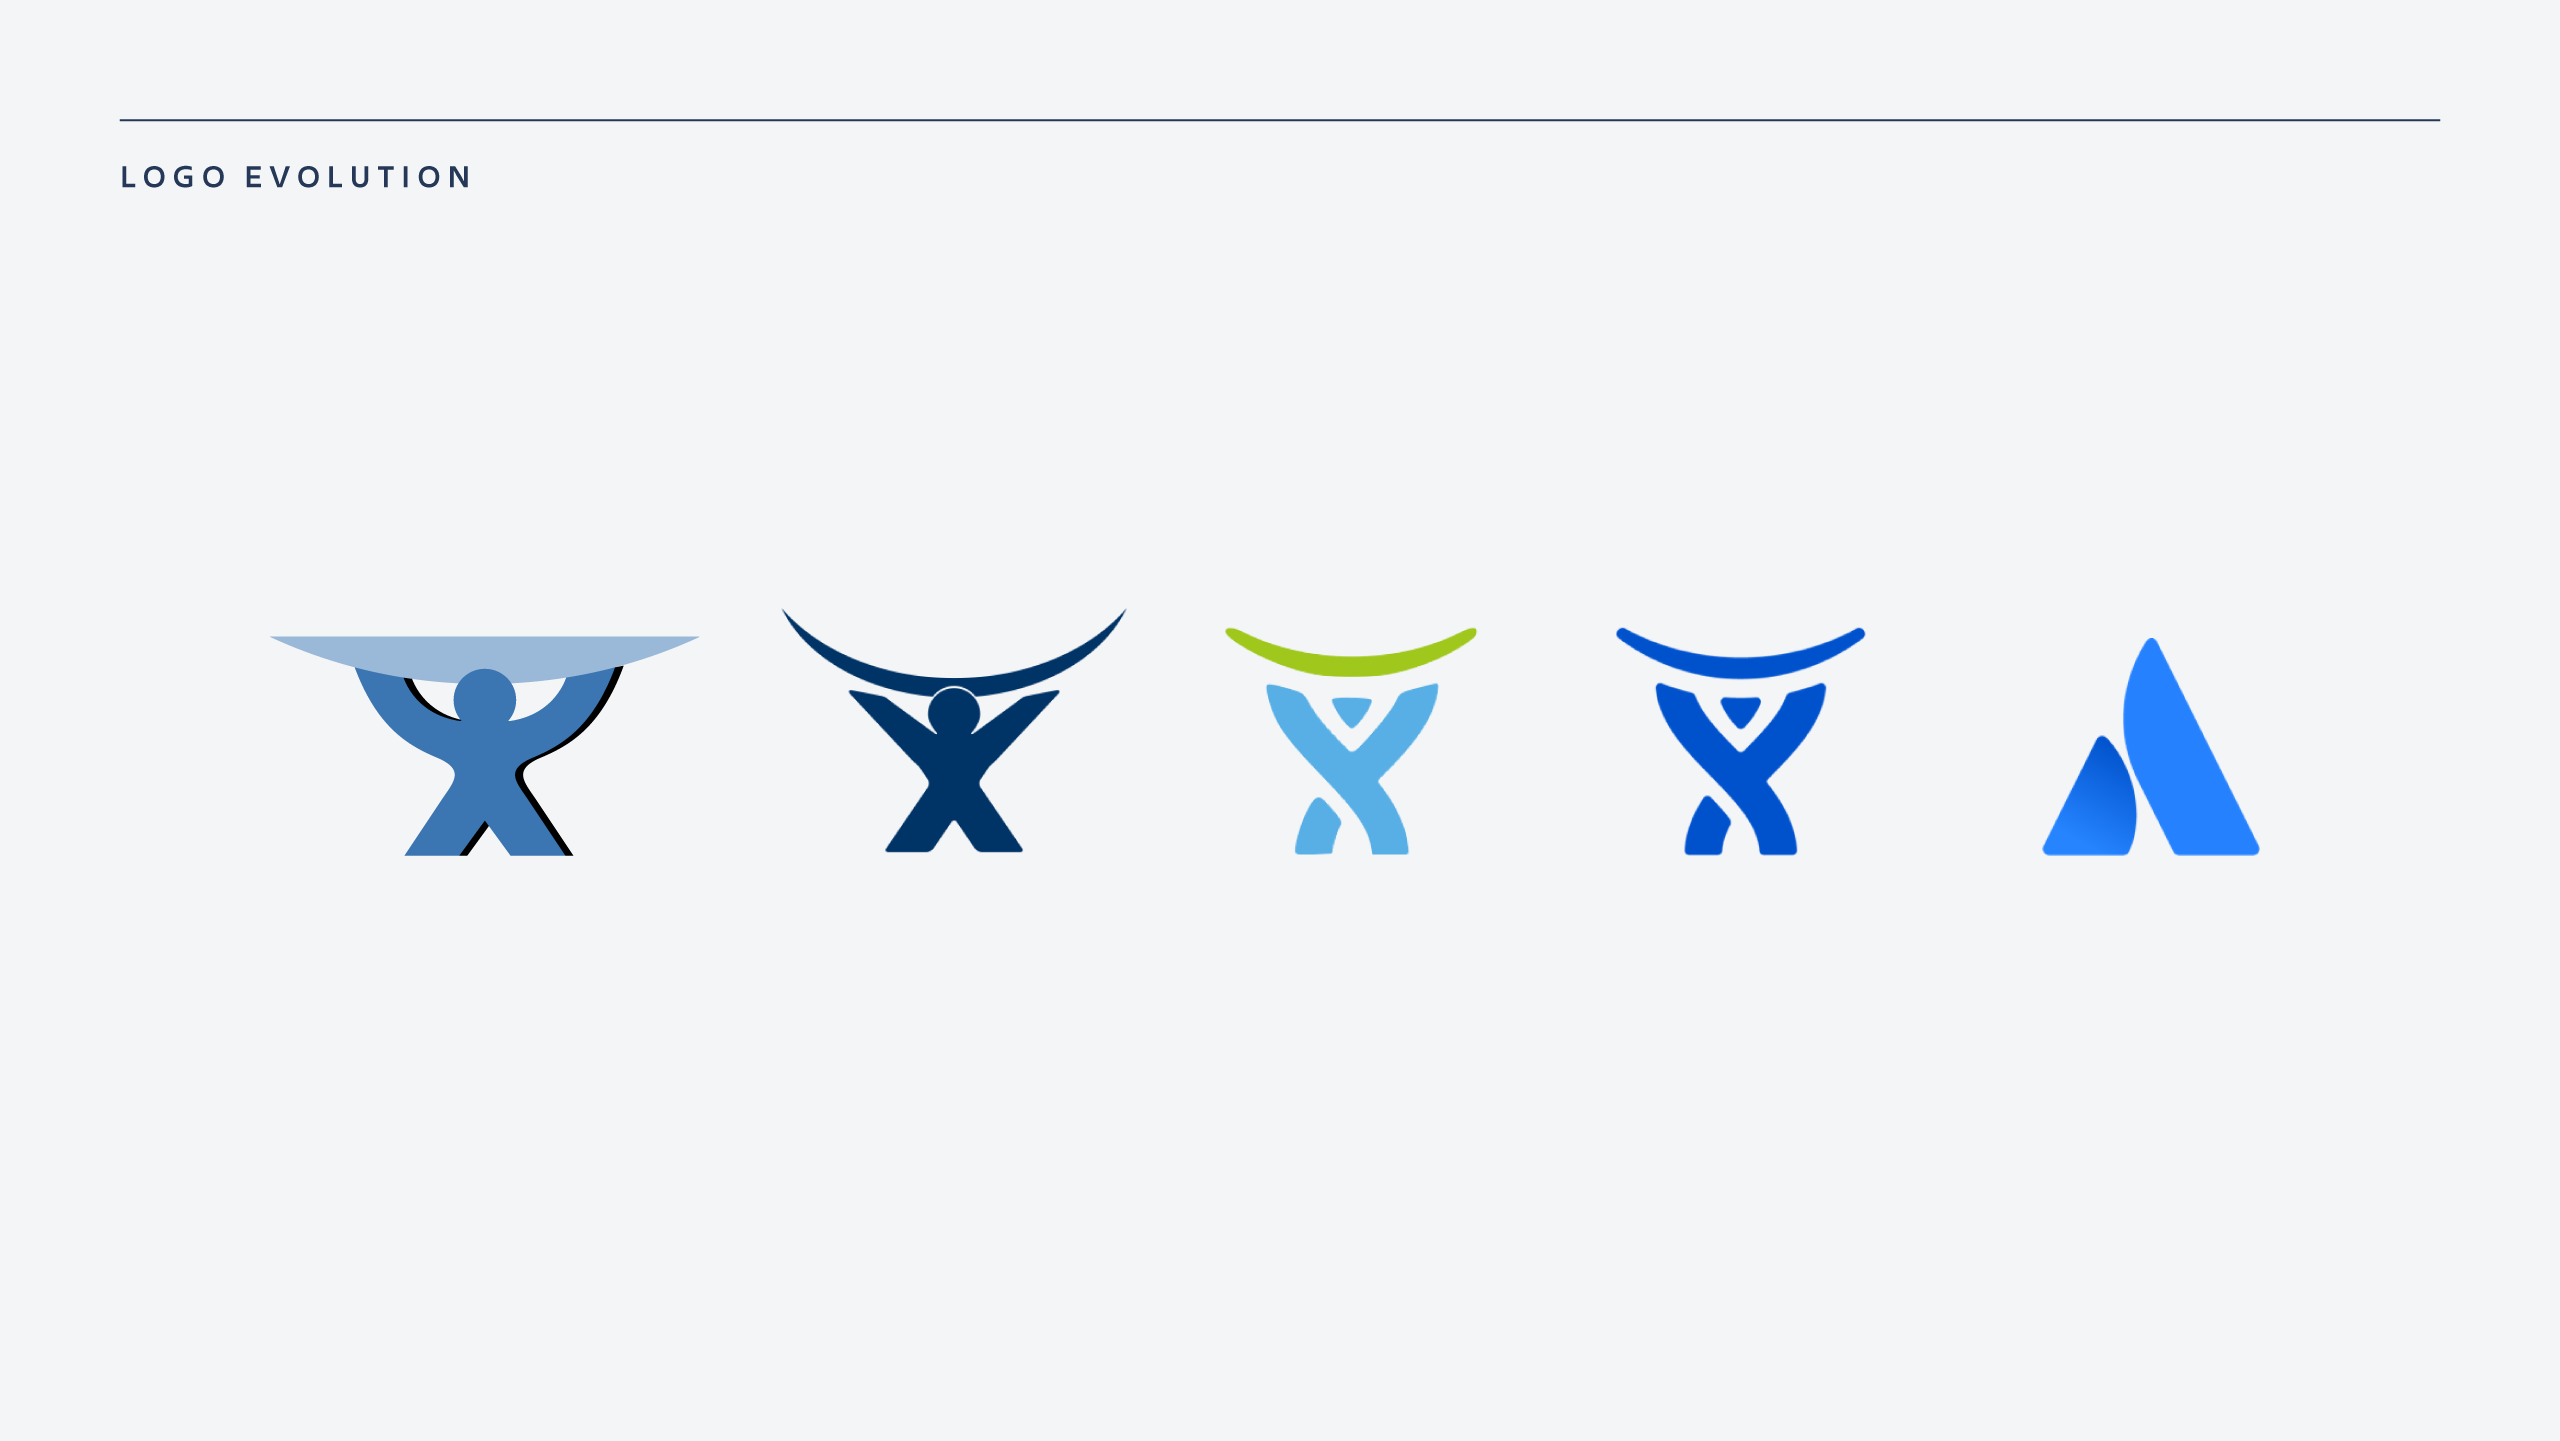 The evolution of Atlassian's logo